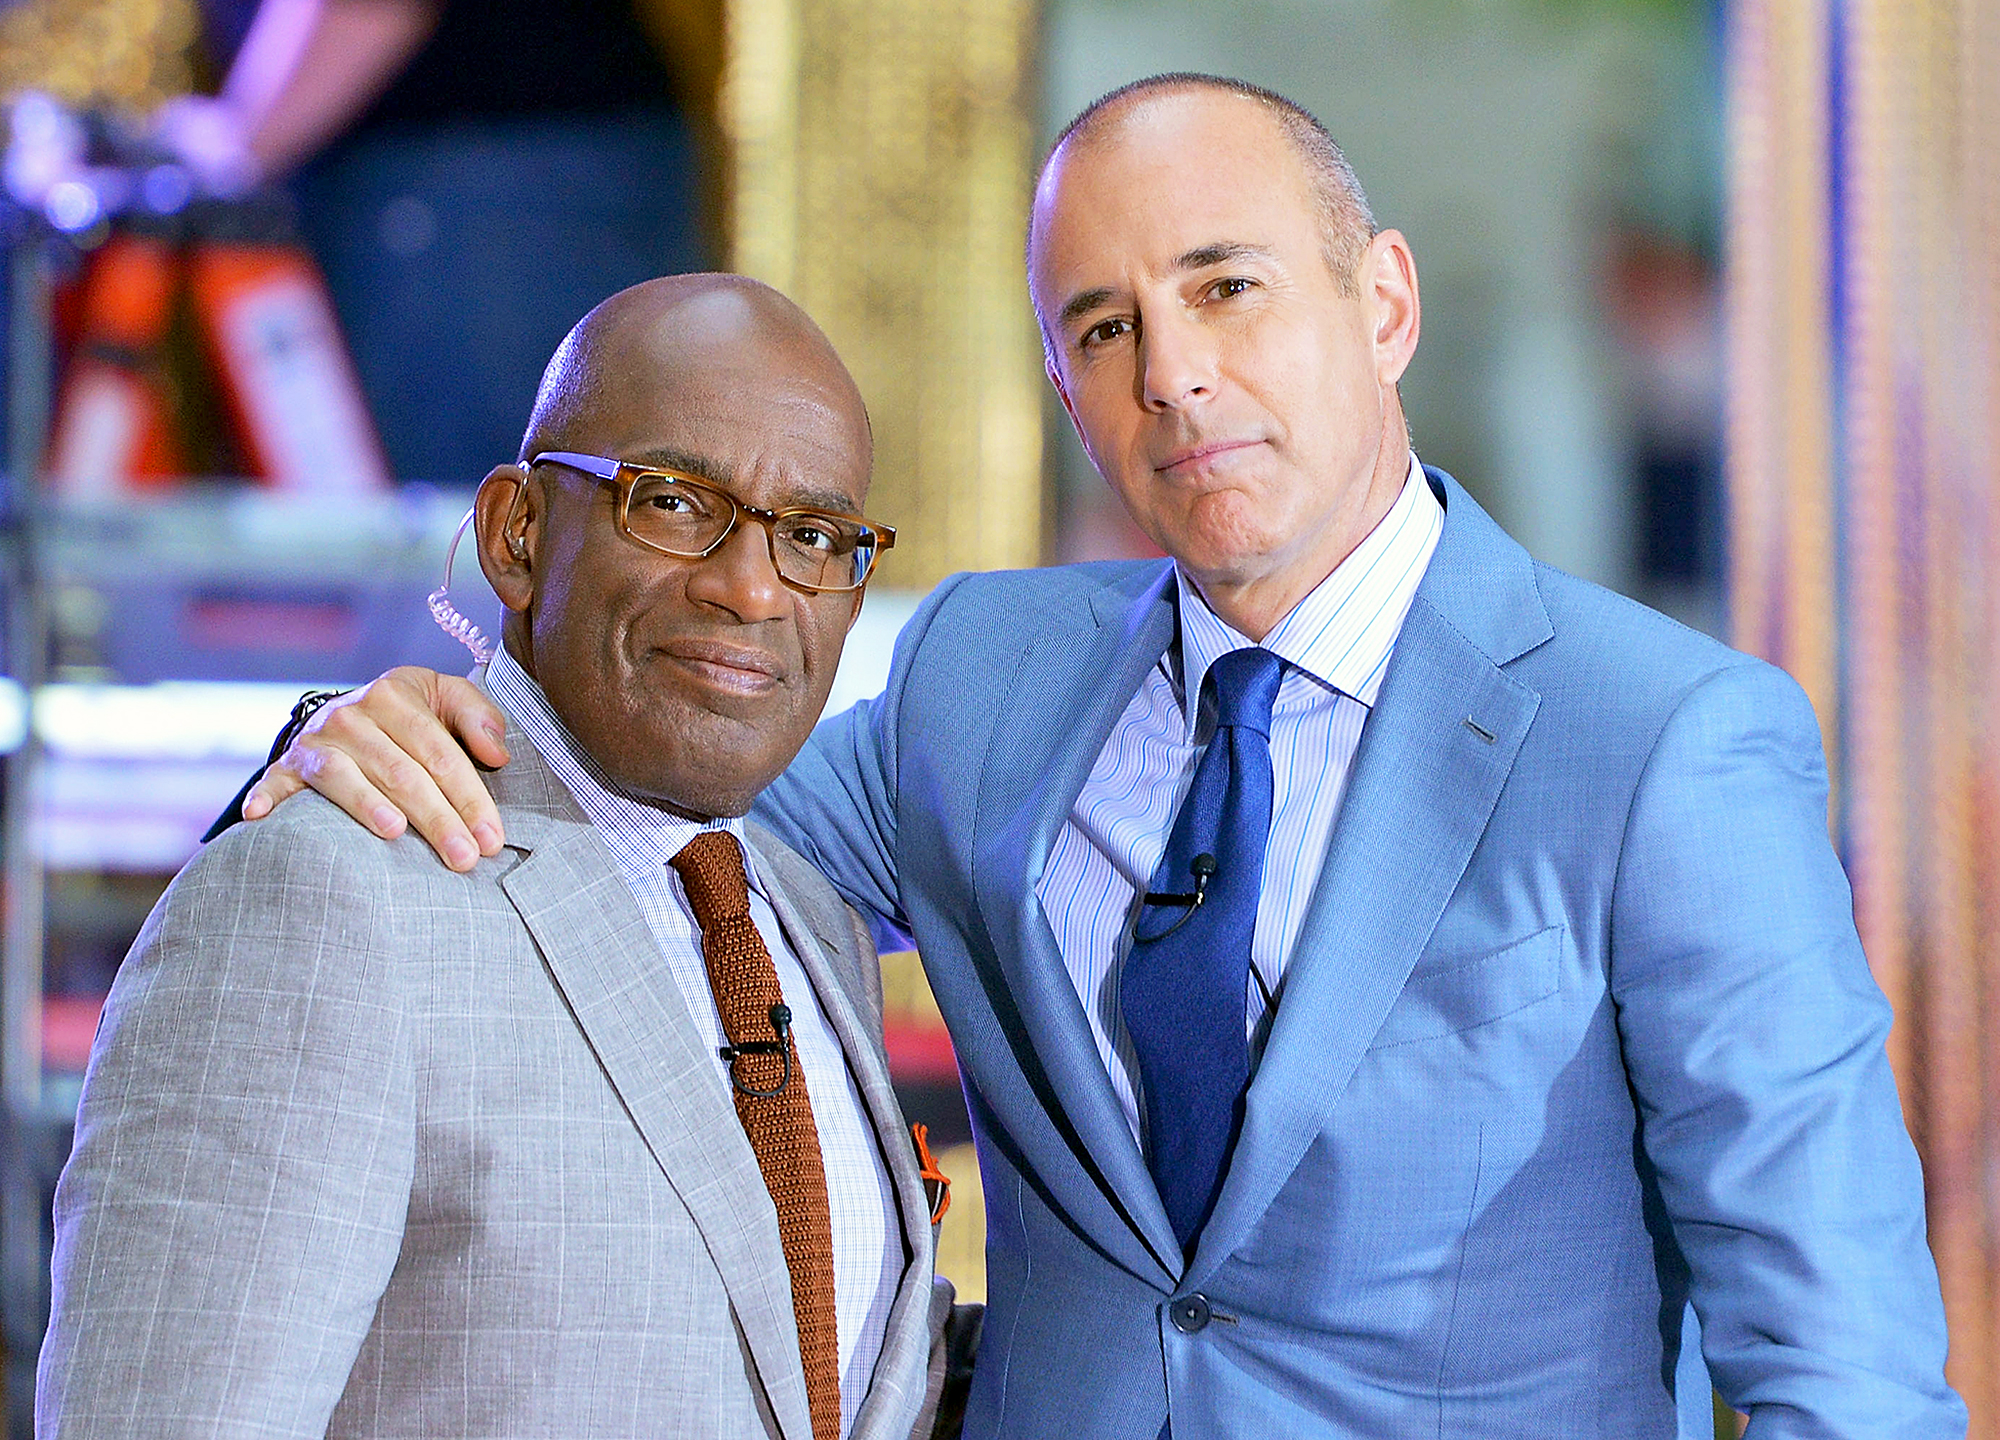 Matt Lauer Fired By Nbc Al Roker Trying To Process The Situation